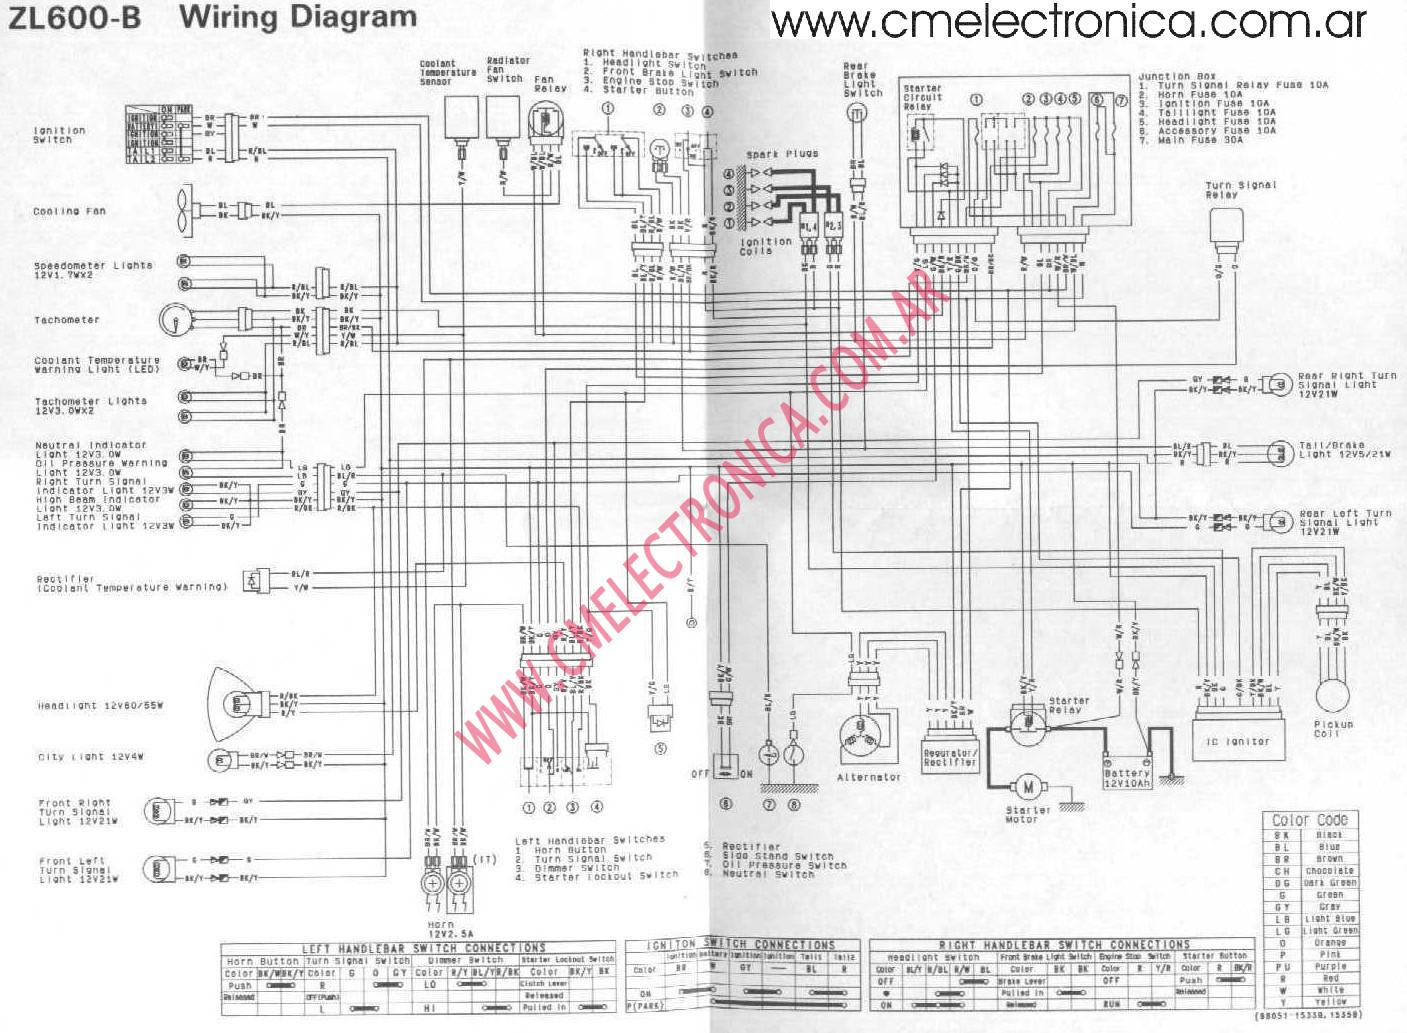 Wiring Diagram Honda Ex5 Dream : Honda xl wiring diagram imageresizertool